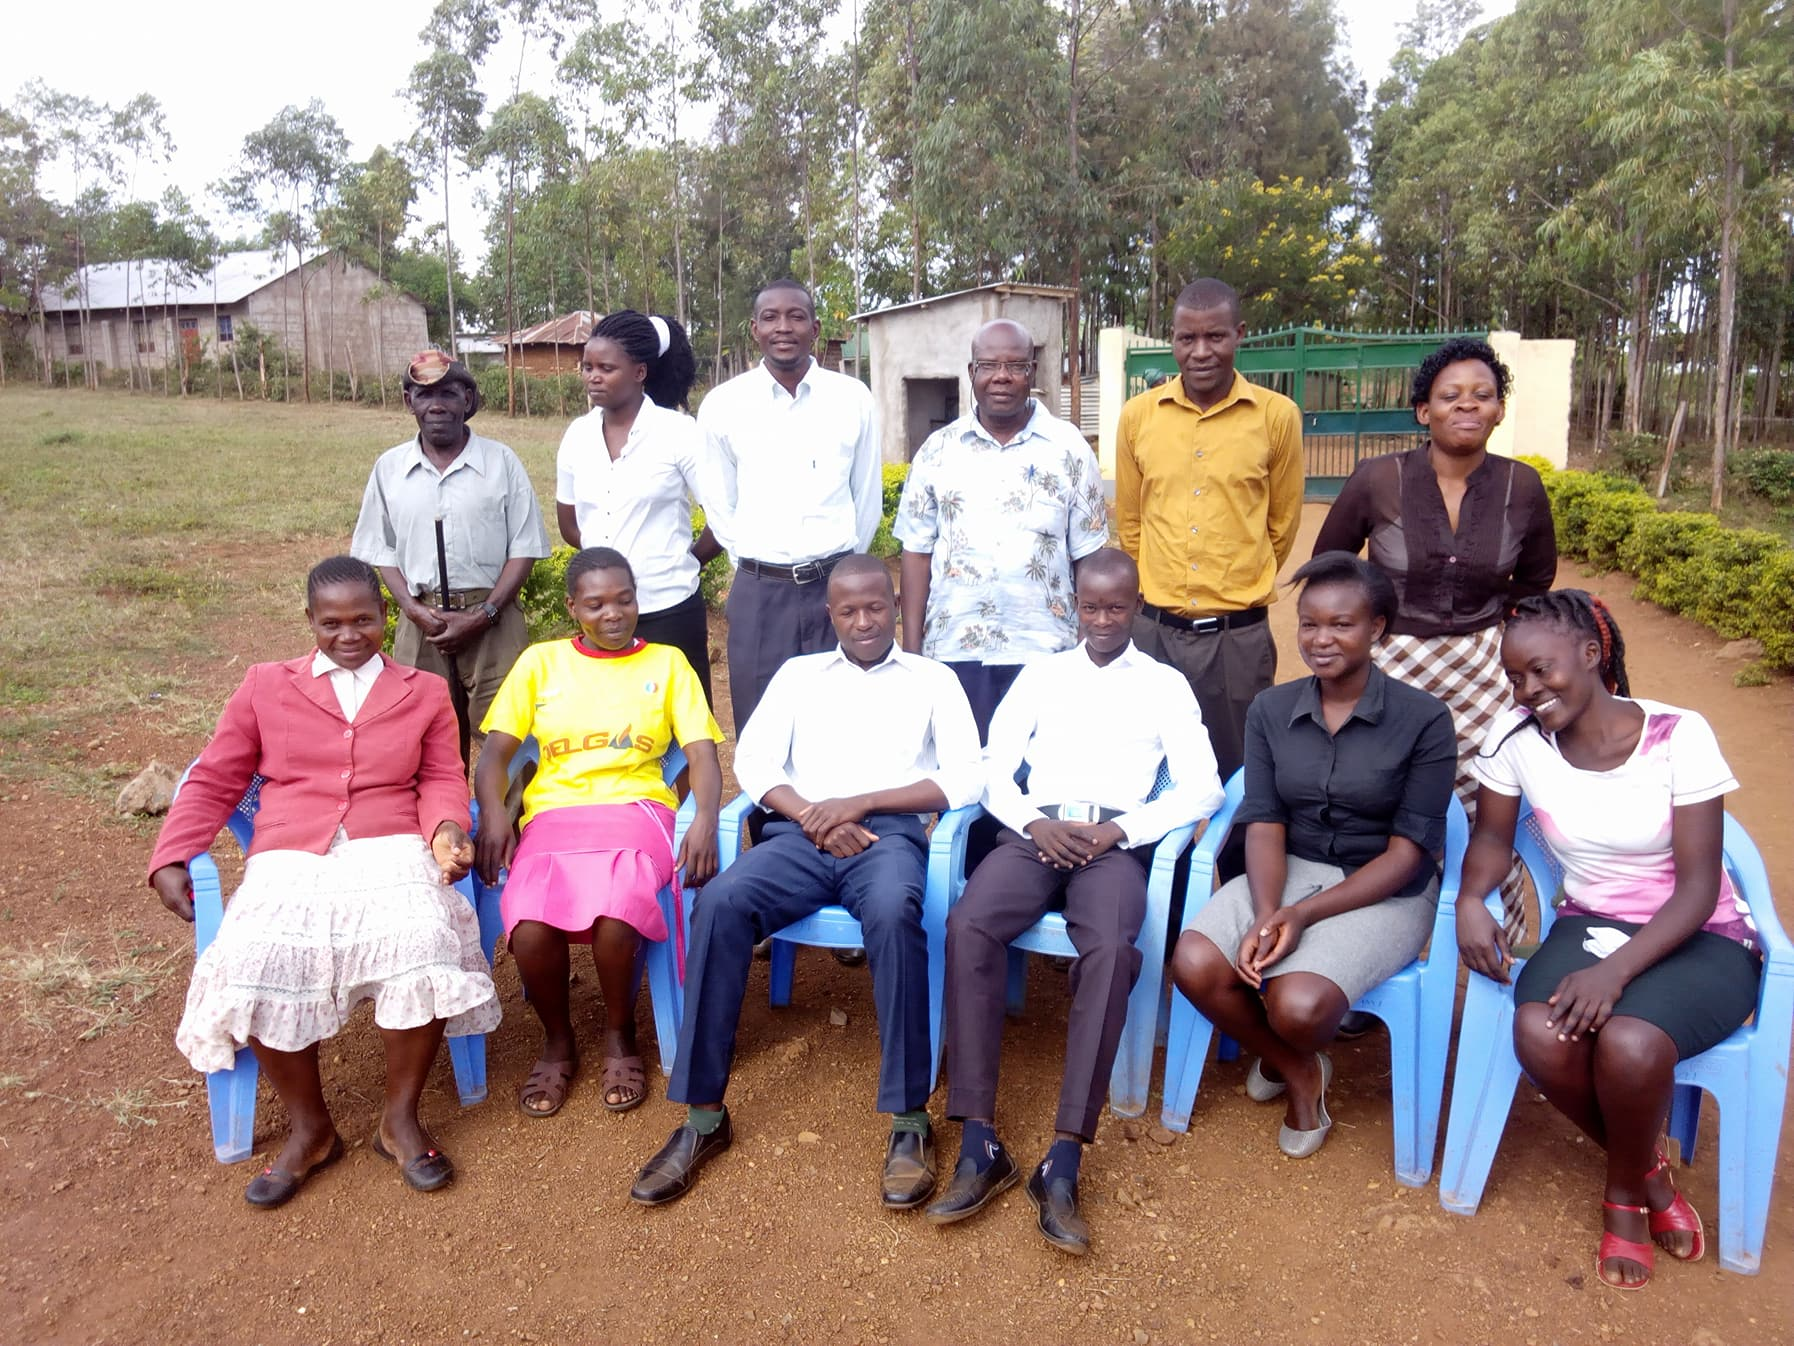 Some of our teachers and faculty (including security) at Christ Care Academy in Migori, Kenya.